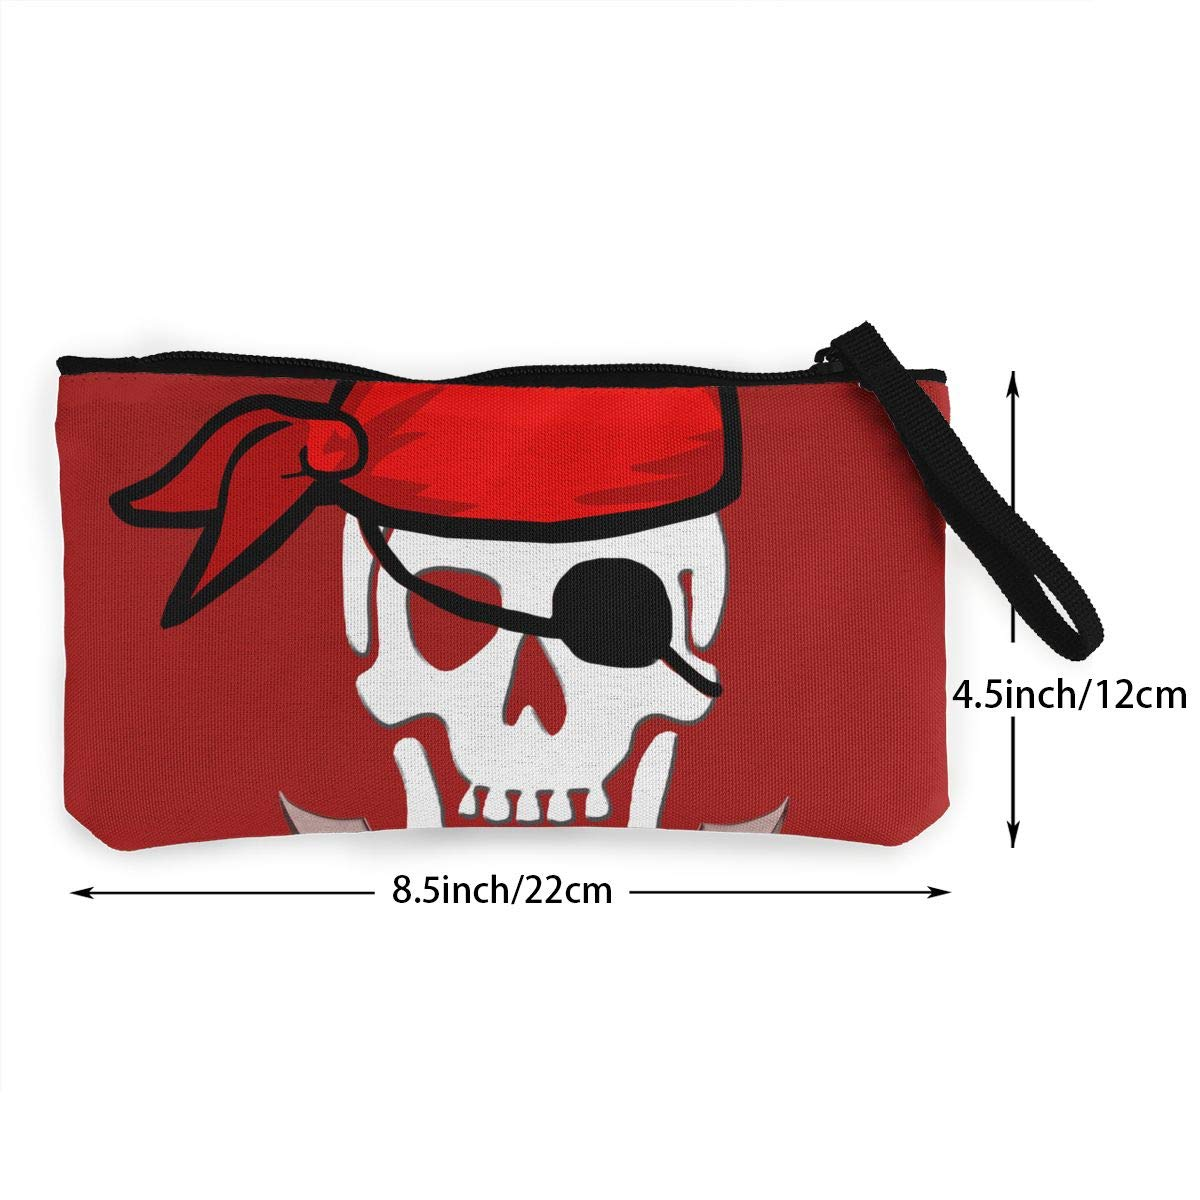 Maple Memories Pirate Portable Canvas Coin Purse Change Purse Pouch Mini Wallet Gifts For Women Girls